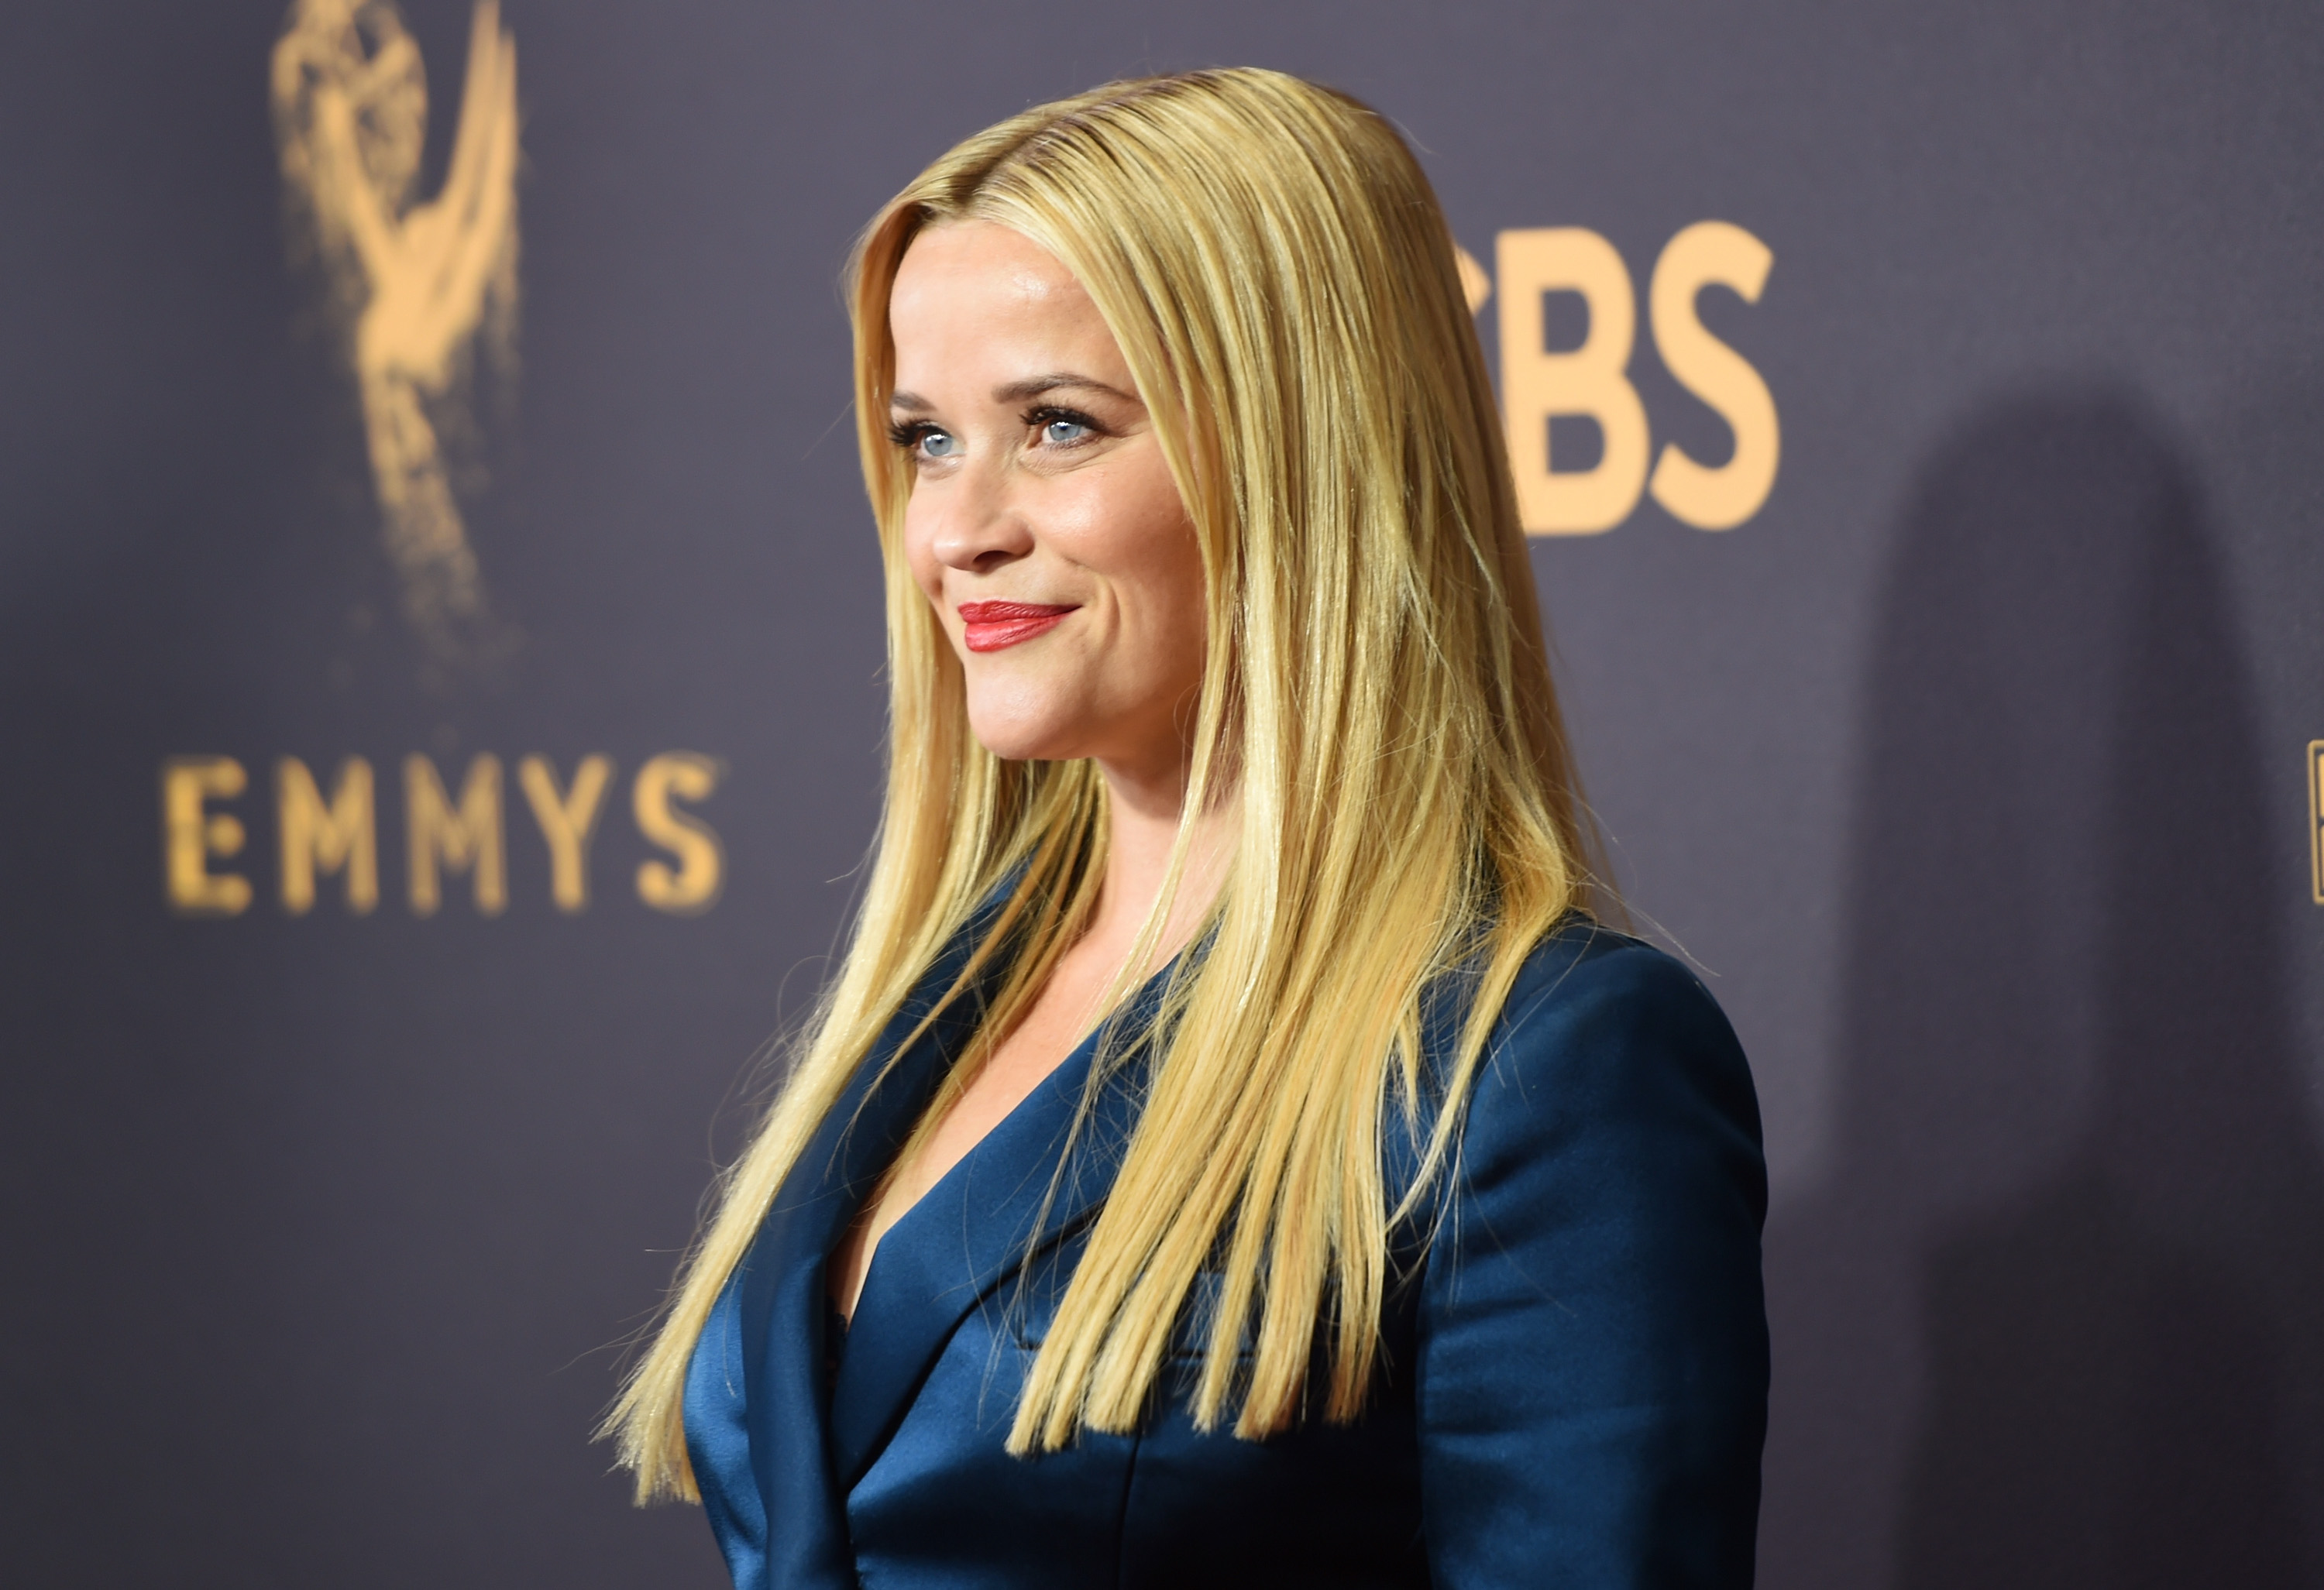 Witherspoon accused of plagiarism by writer for 'Gone Girl'